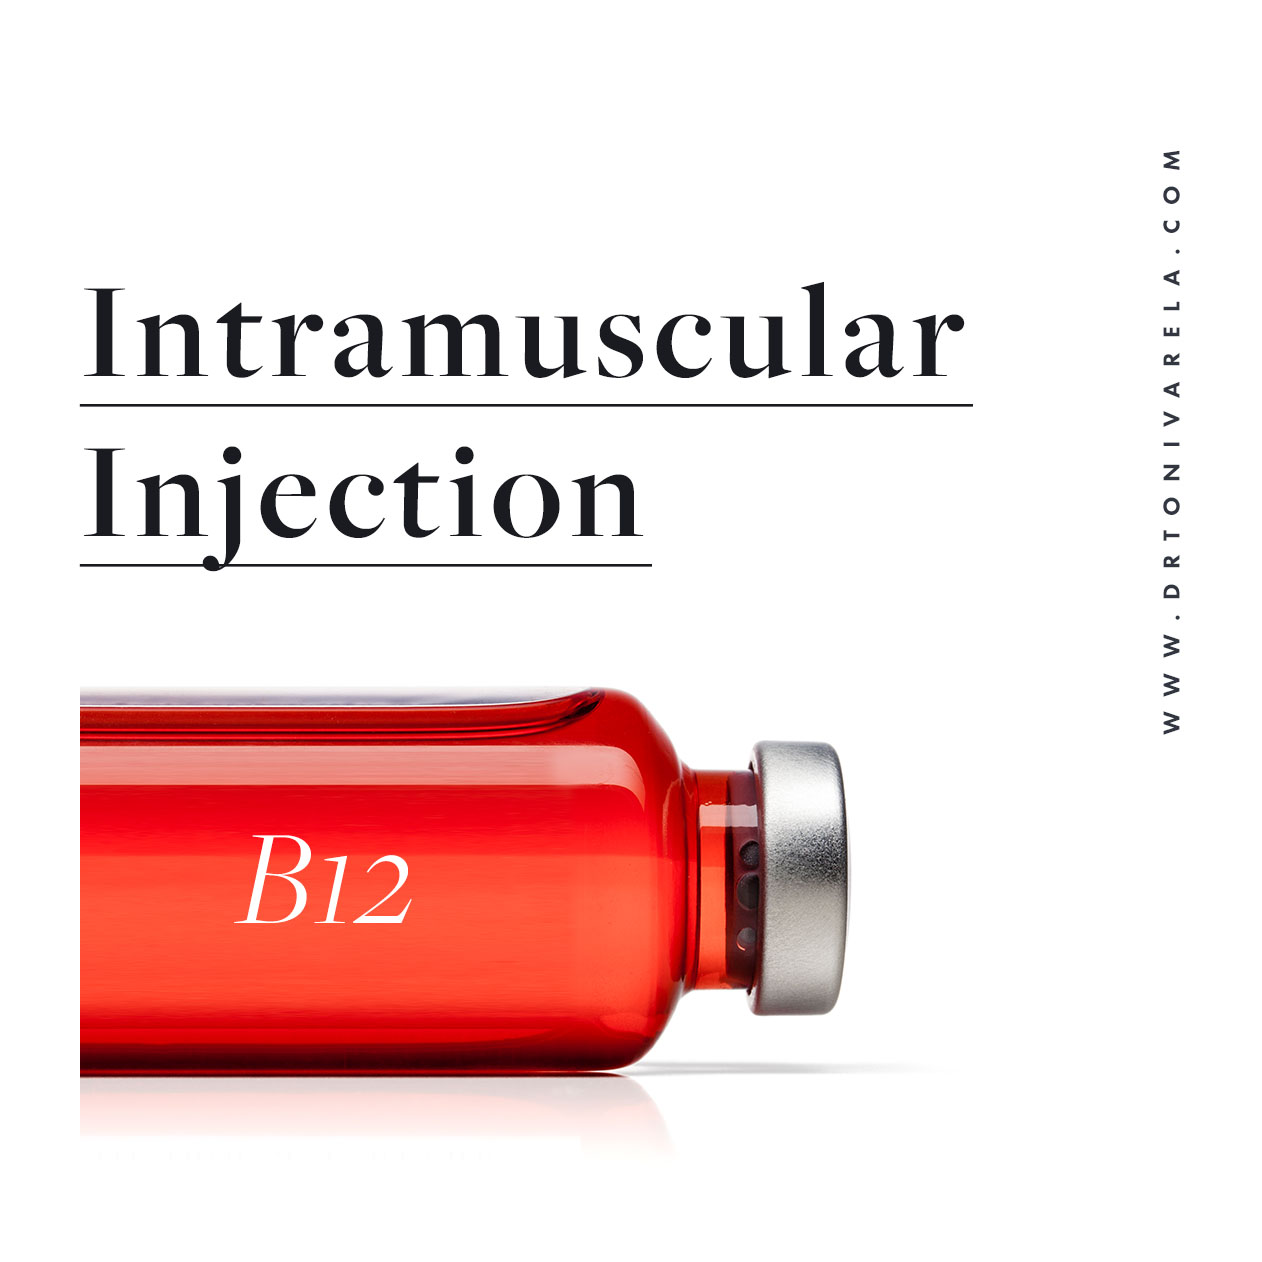 B12 & INTRAMUSCULAR INJECTIONS - IM Therapies involve the injection of healthy nutrients to promote wellness and metabolism. Intramuscular Injection options include:• B12• Folate• B-Complex• Traumeel• Lipo-MIC with B12& More...So please feel free to ask if there is something you desire but do not see.